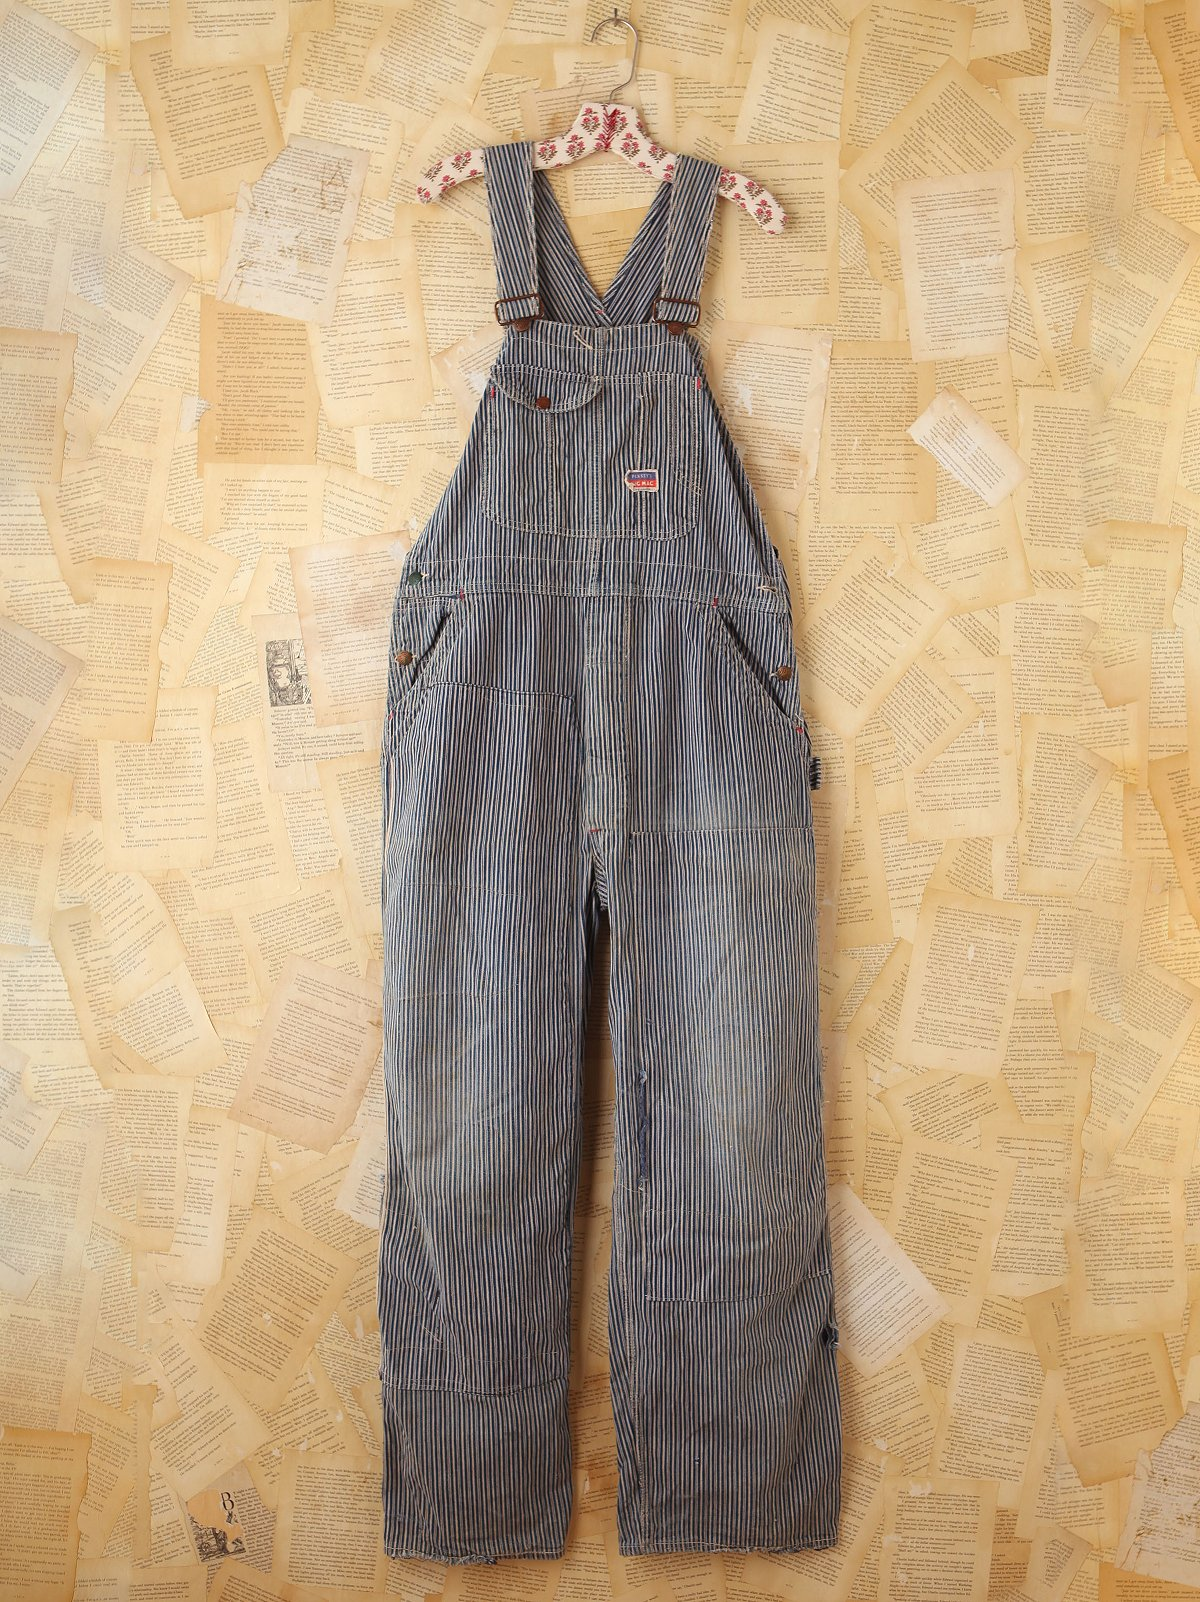 Vintage Big Mac Railroad Striped Overalls